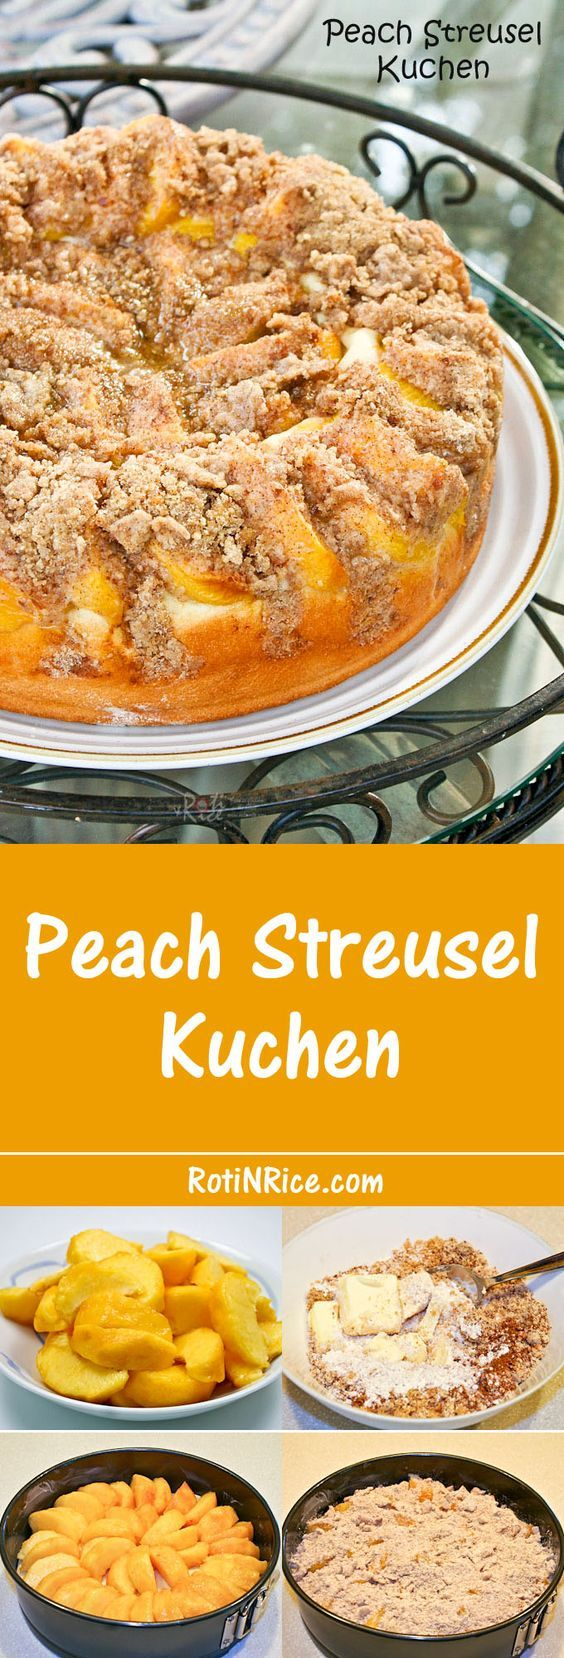 Serve this bread-like Peach Streusel Kuchen warm with butter and a cuppa. A wonderful and satisfying treat for tea time or snack time.   Food to gladden the heart at RotiNRice.com